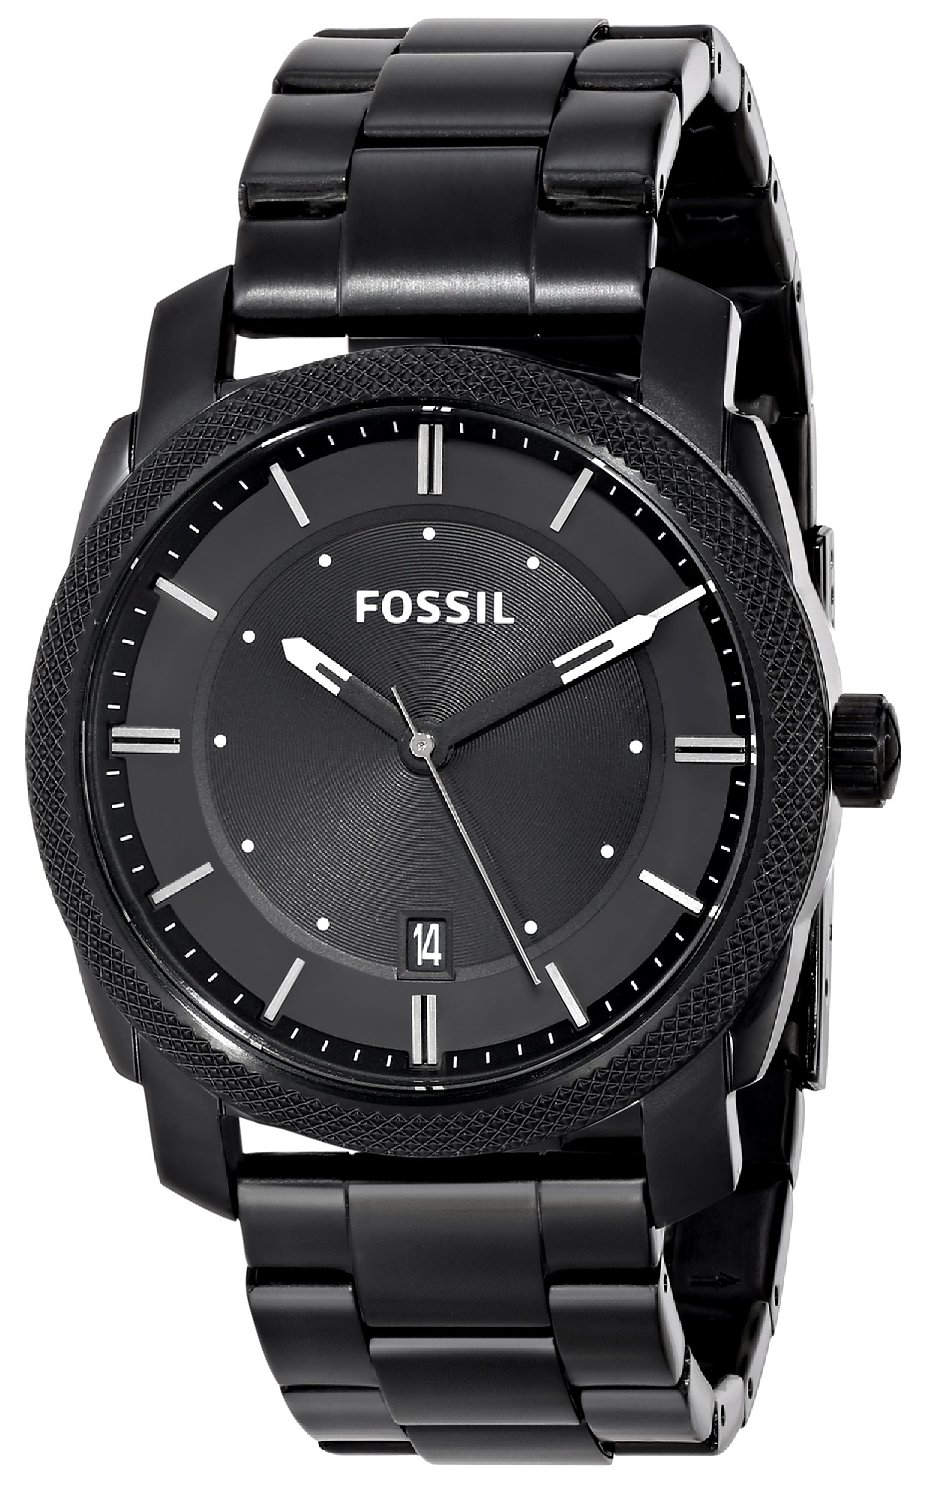 62a2444d1f62 Fossil FS4775 Machine Three Hand Stainless Steel Watch Black  Fossil